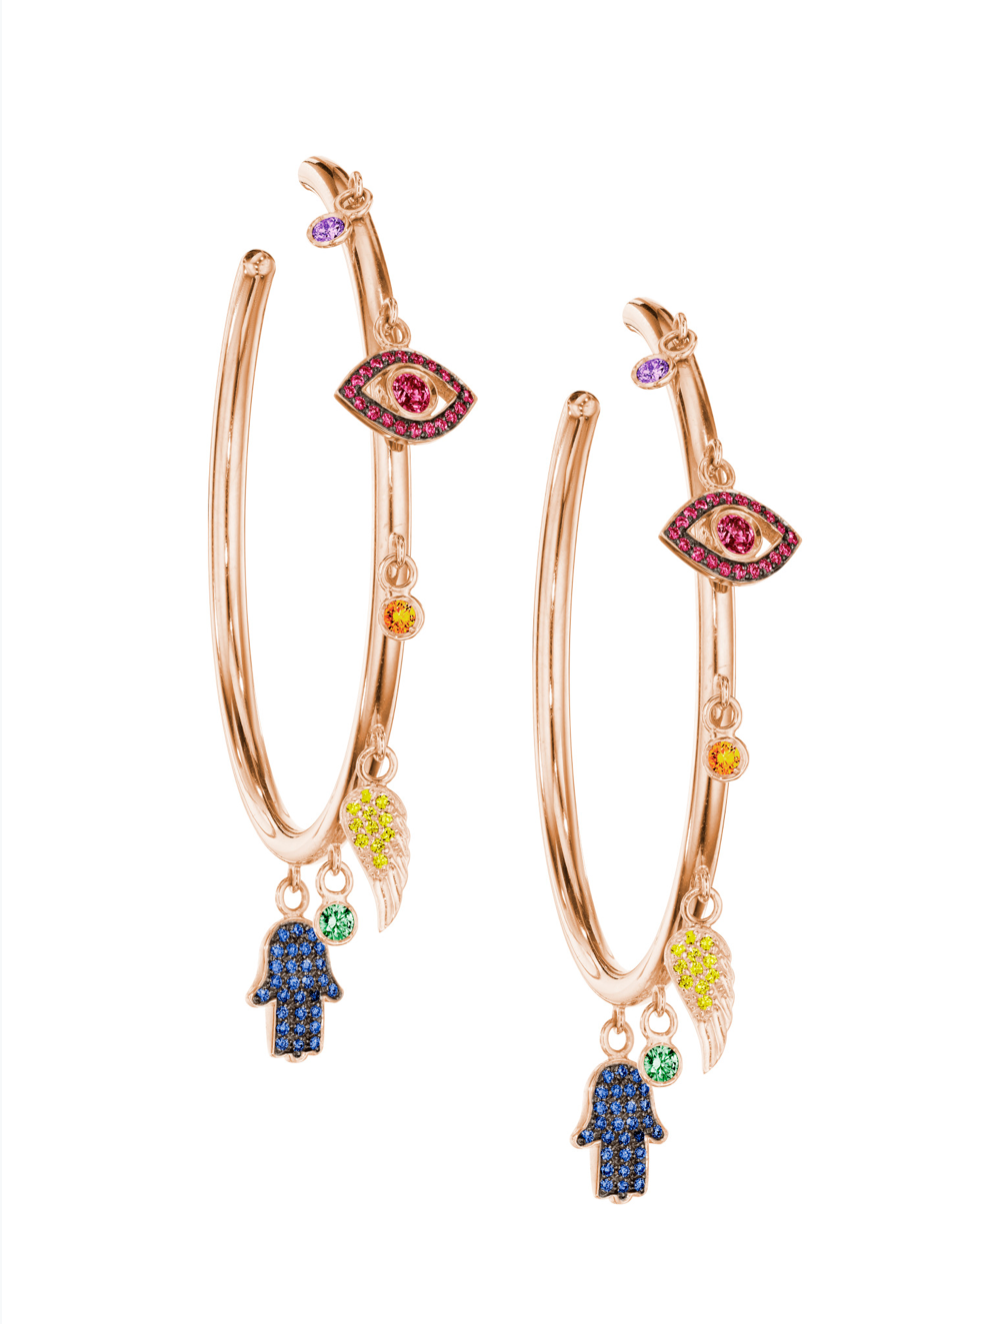 netali nissim rainbow sapphire charm hoop earrings